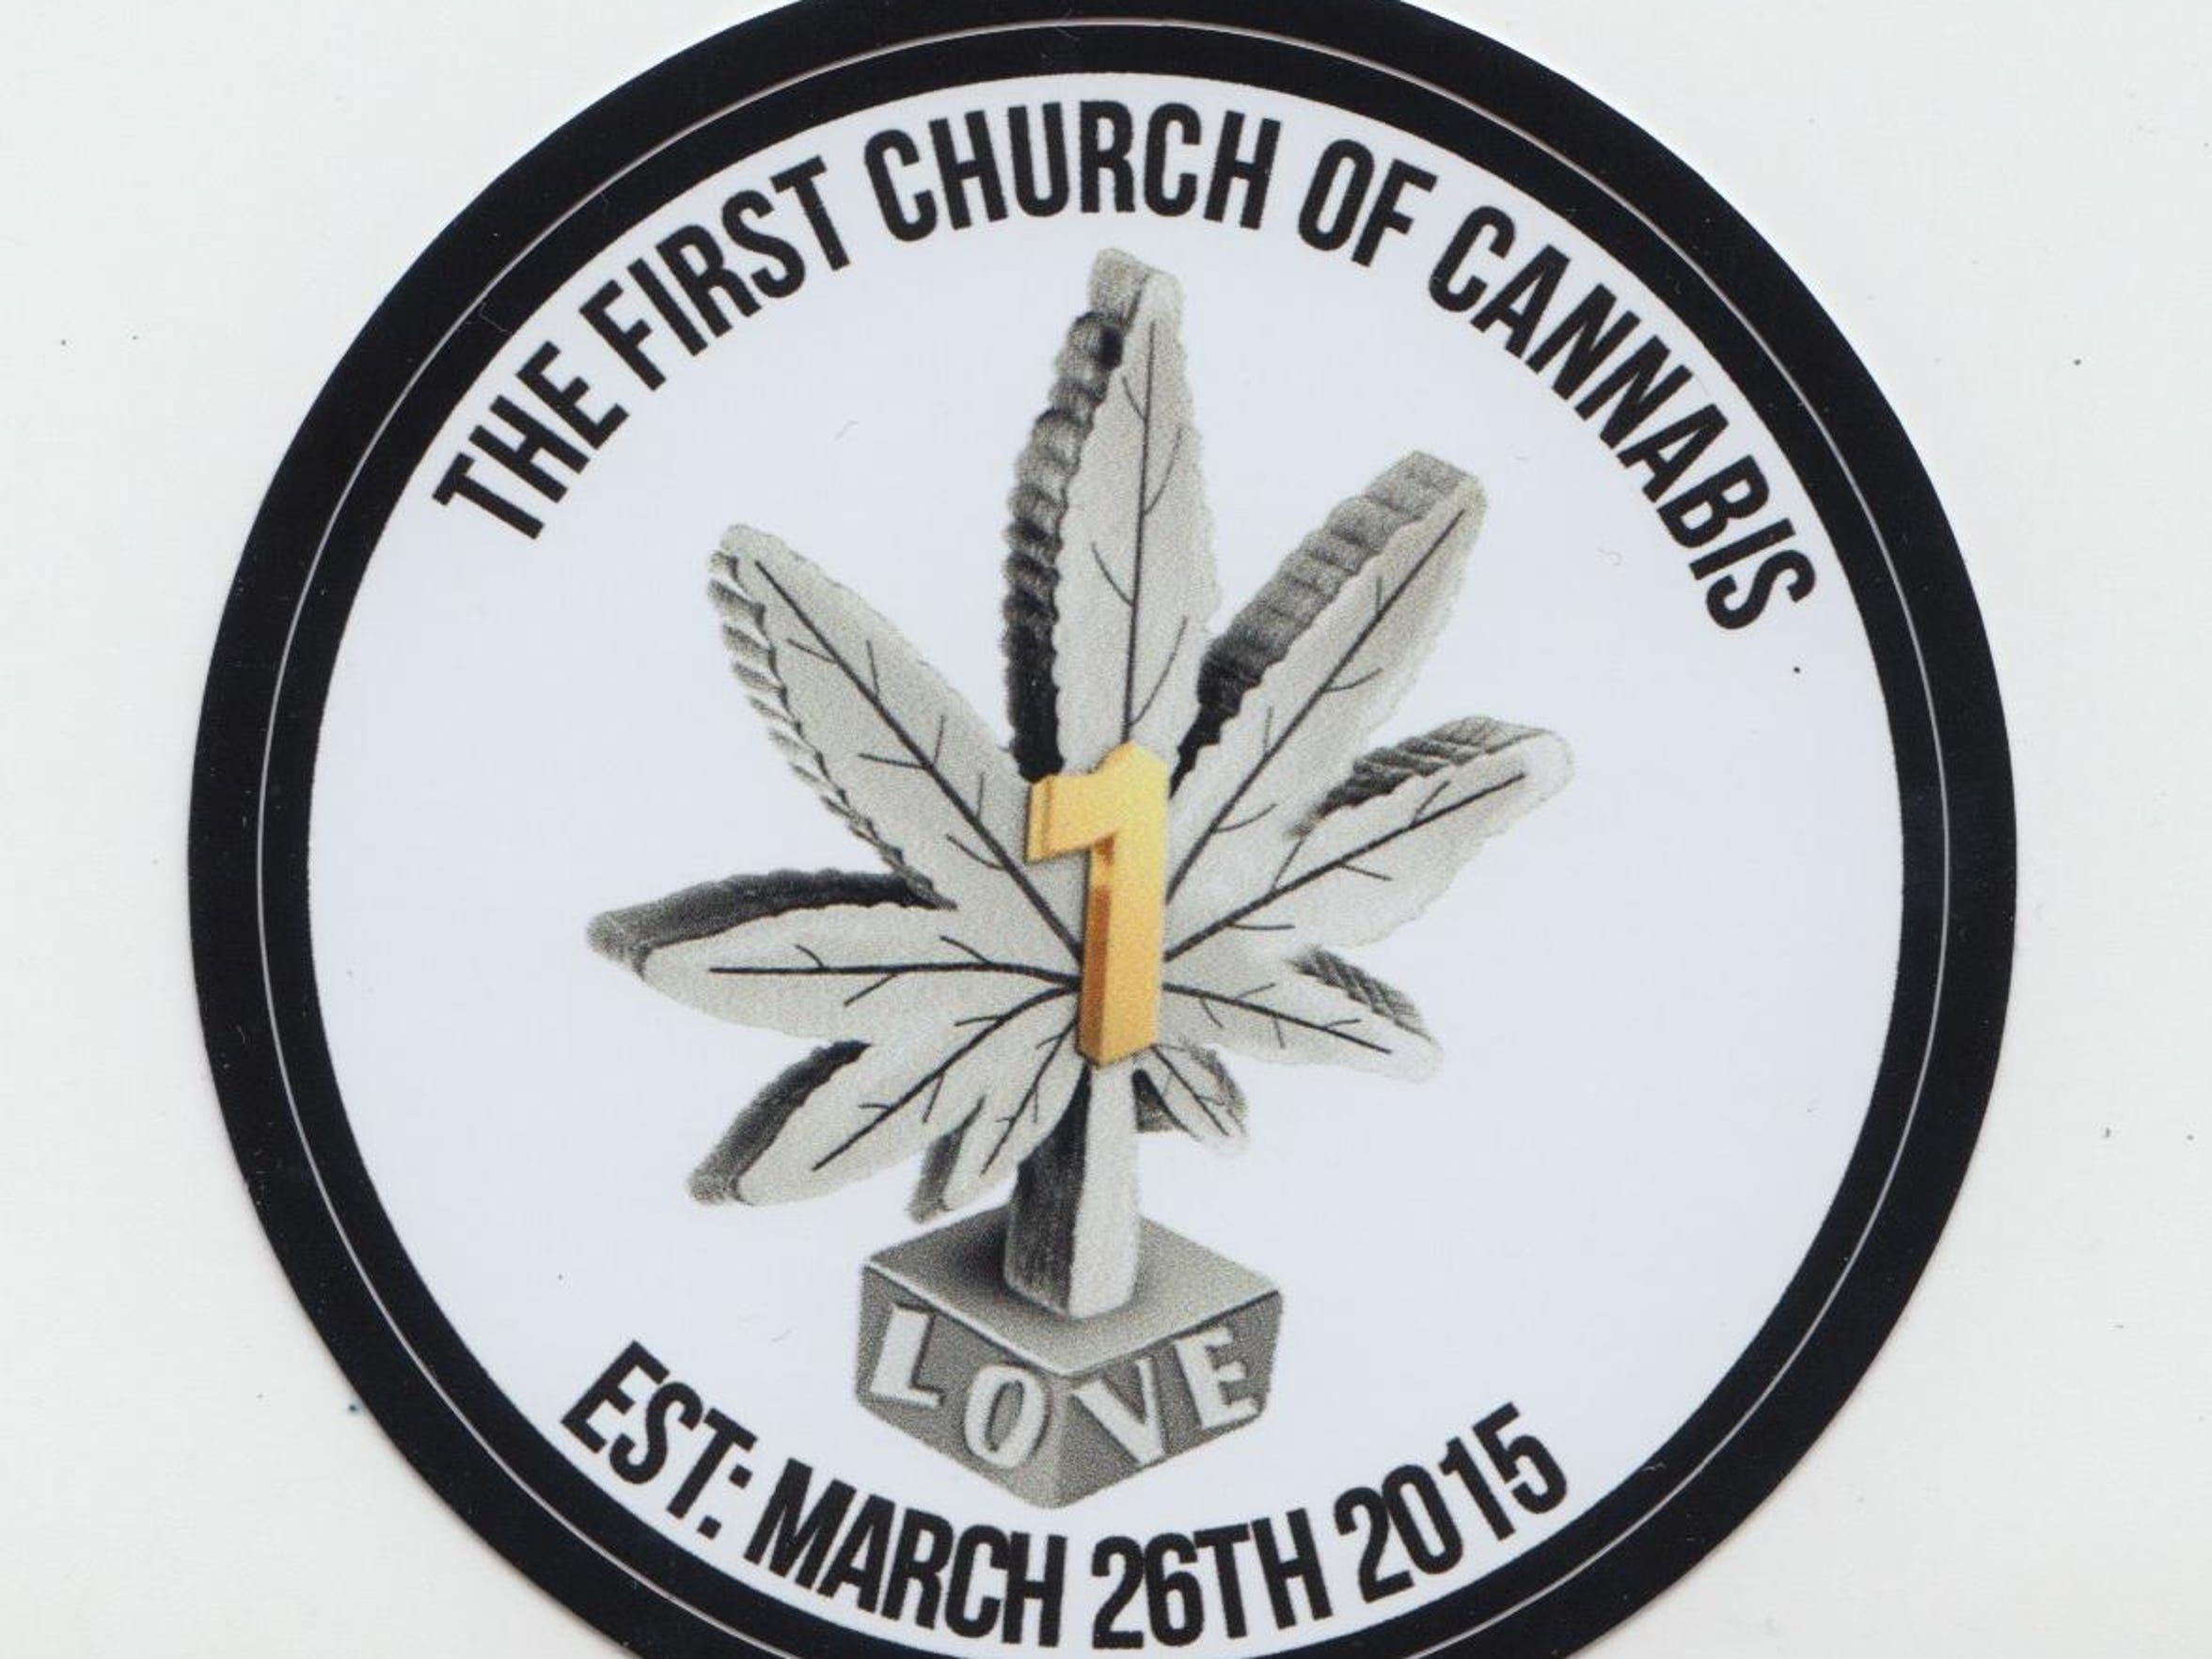 Church of cannabis sticker